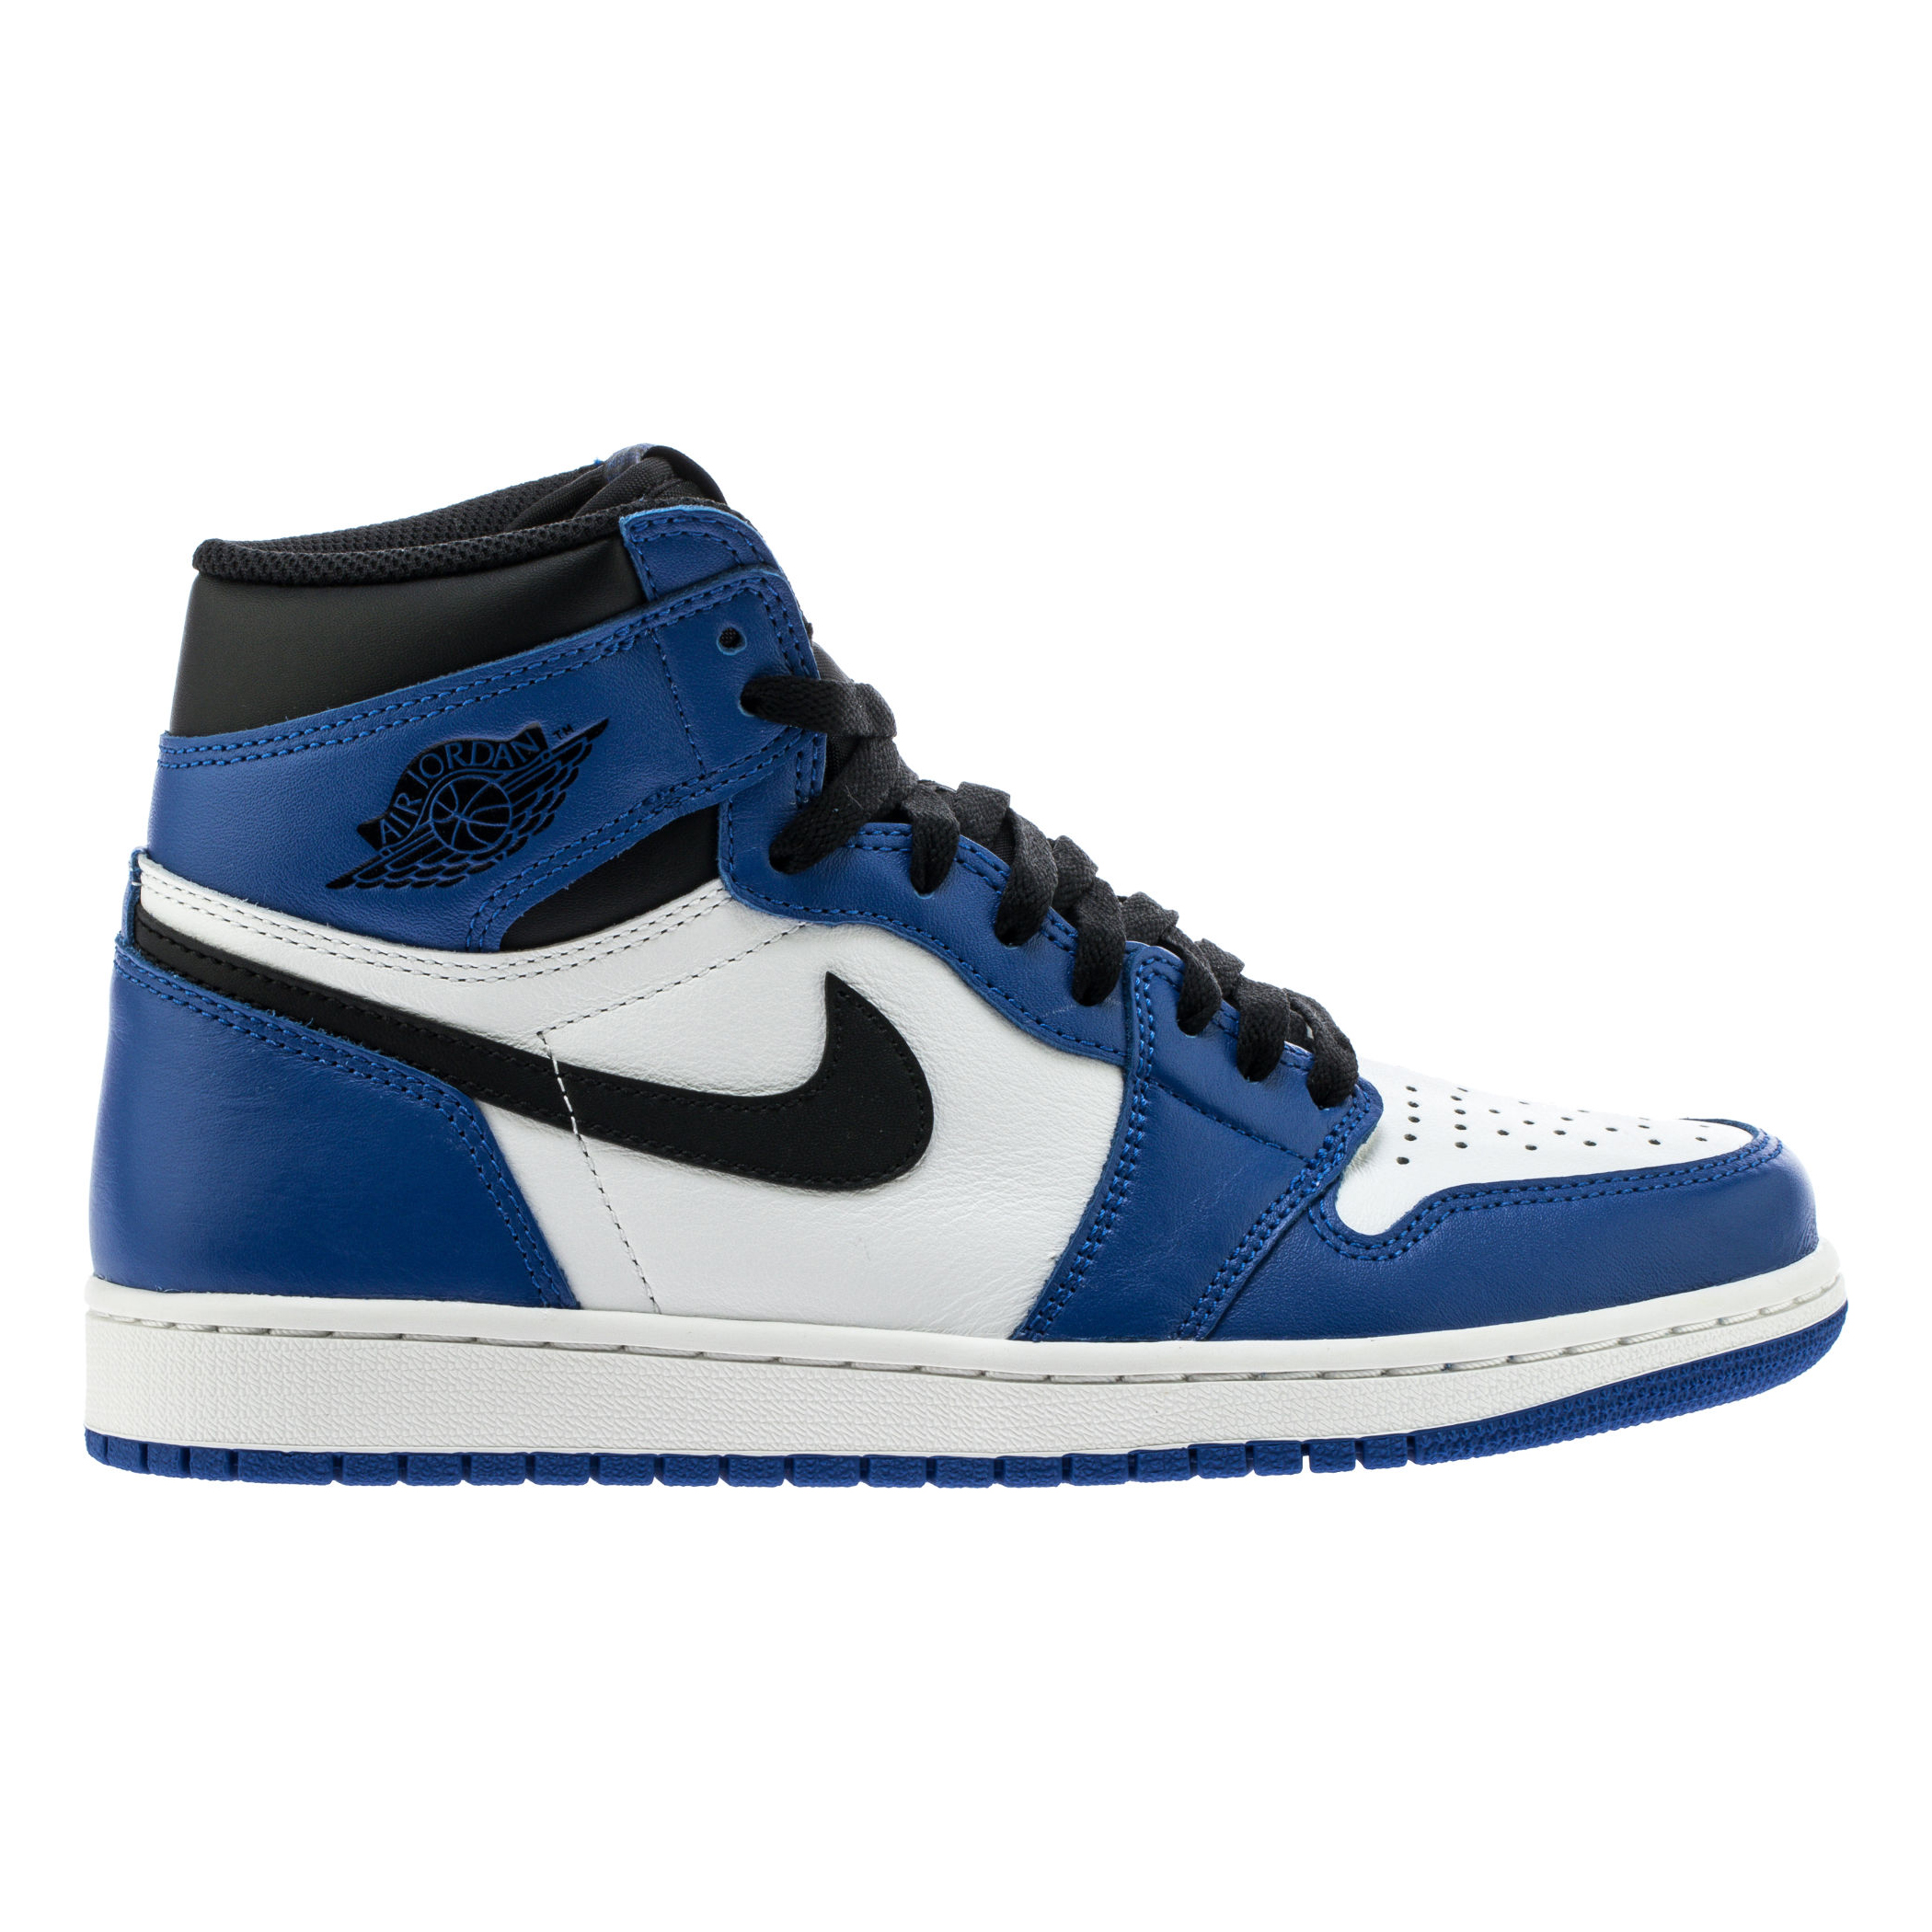 air jordan 1 retro high OG game royal 2